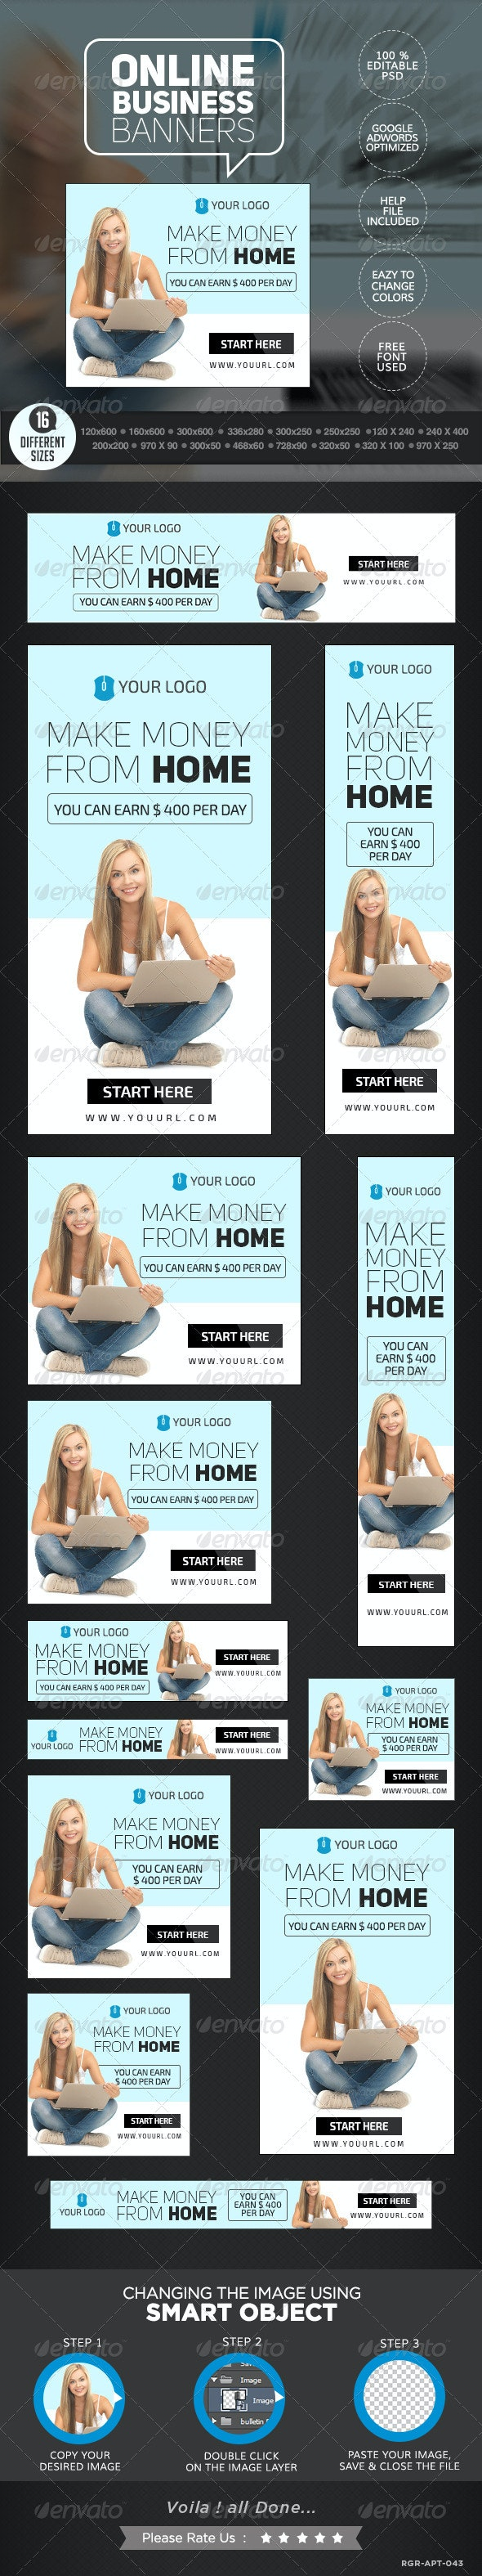 Online Business Banners - Banners & Ads Web Elements